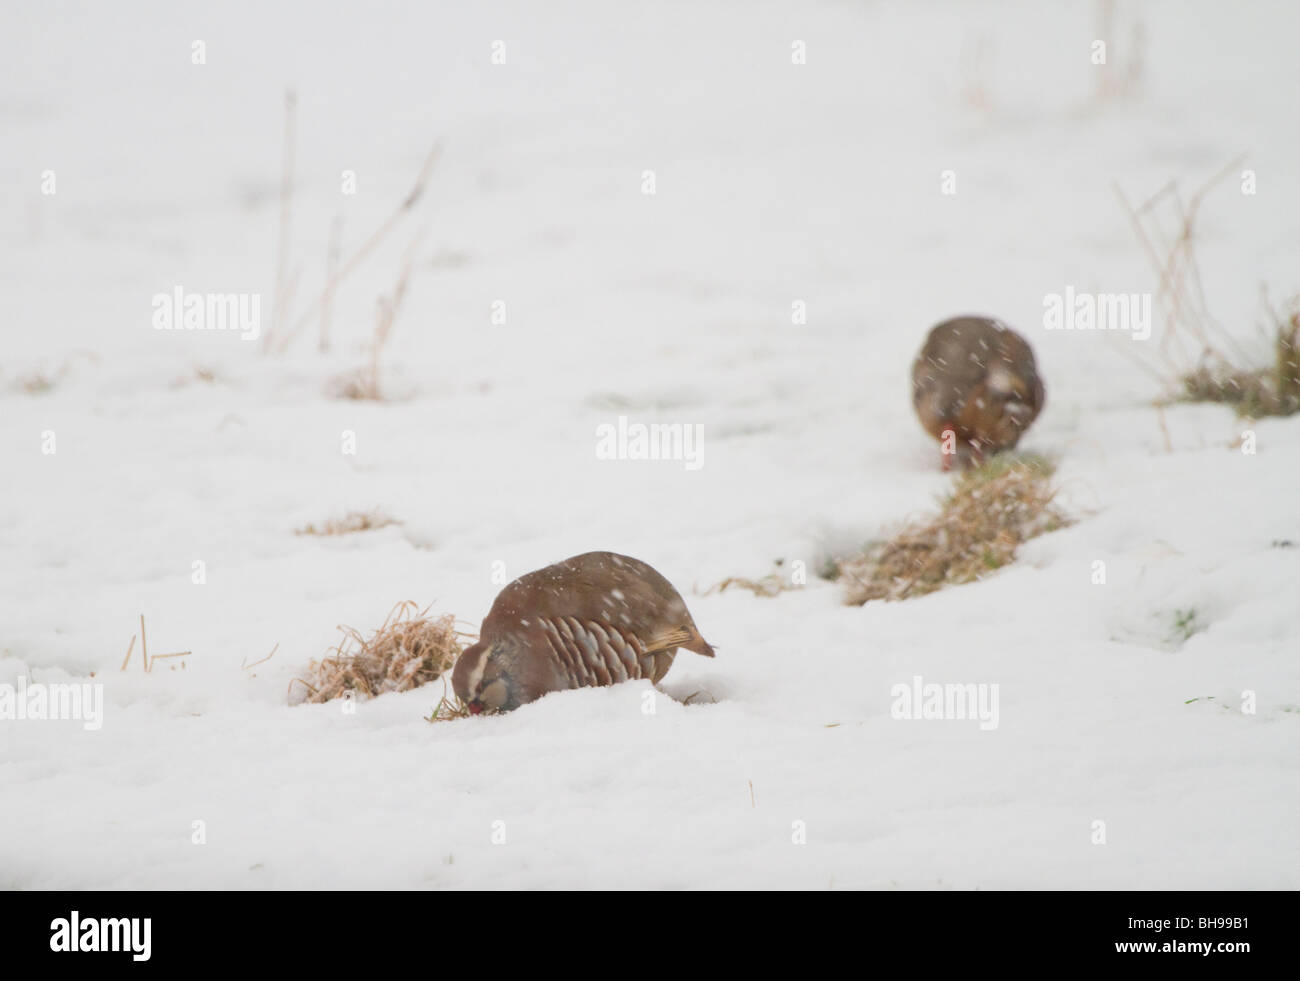 Red-legged partridges, Alectoris rufus, feeding in a snowy field, Perthshire, Scotland - Stock Image